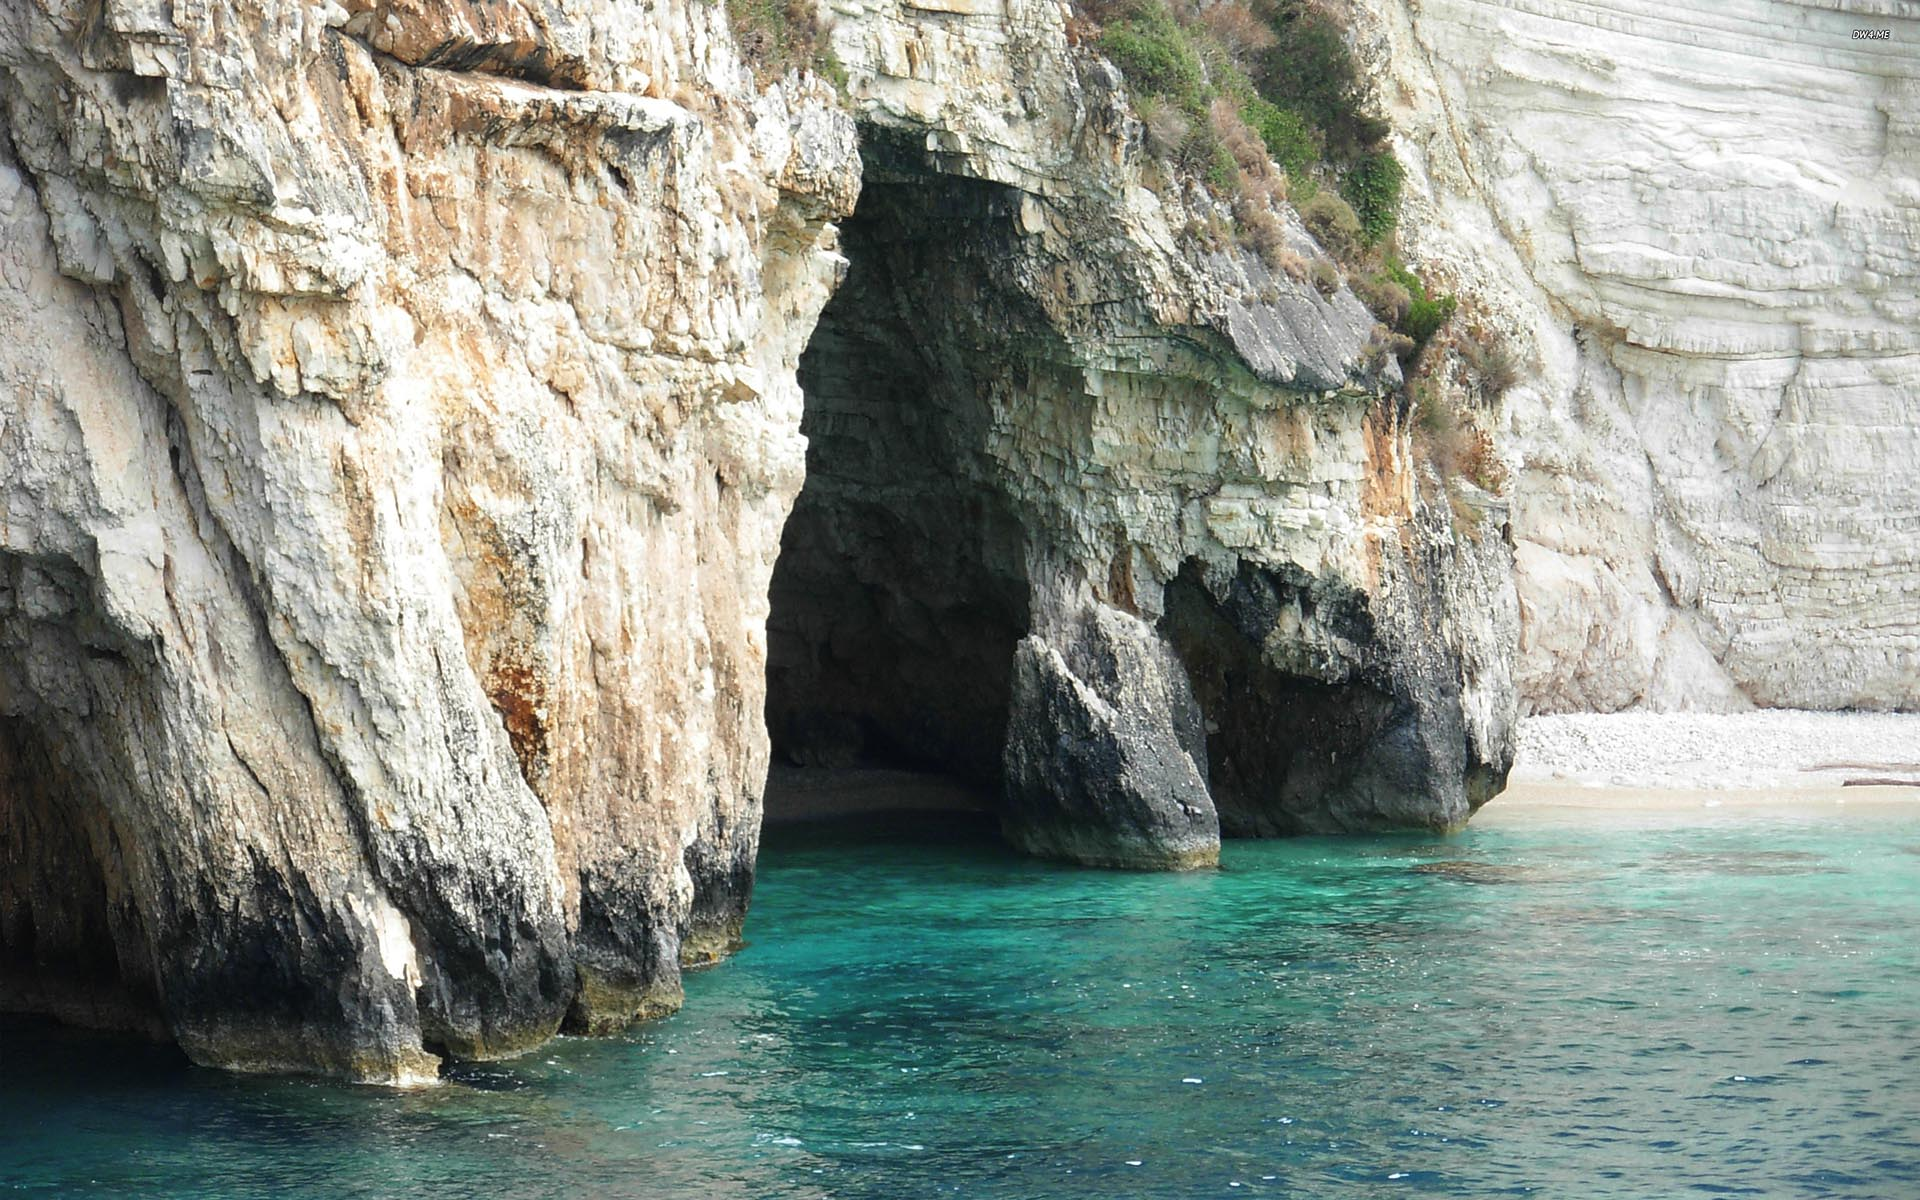 Yacht Charter Zante island Blue caves jumping to Sailing in Greece with GreekSunYachts Zakynthos